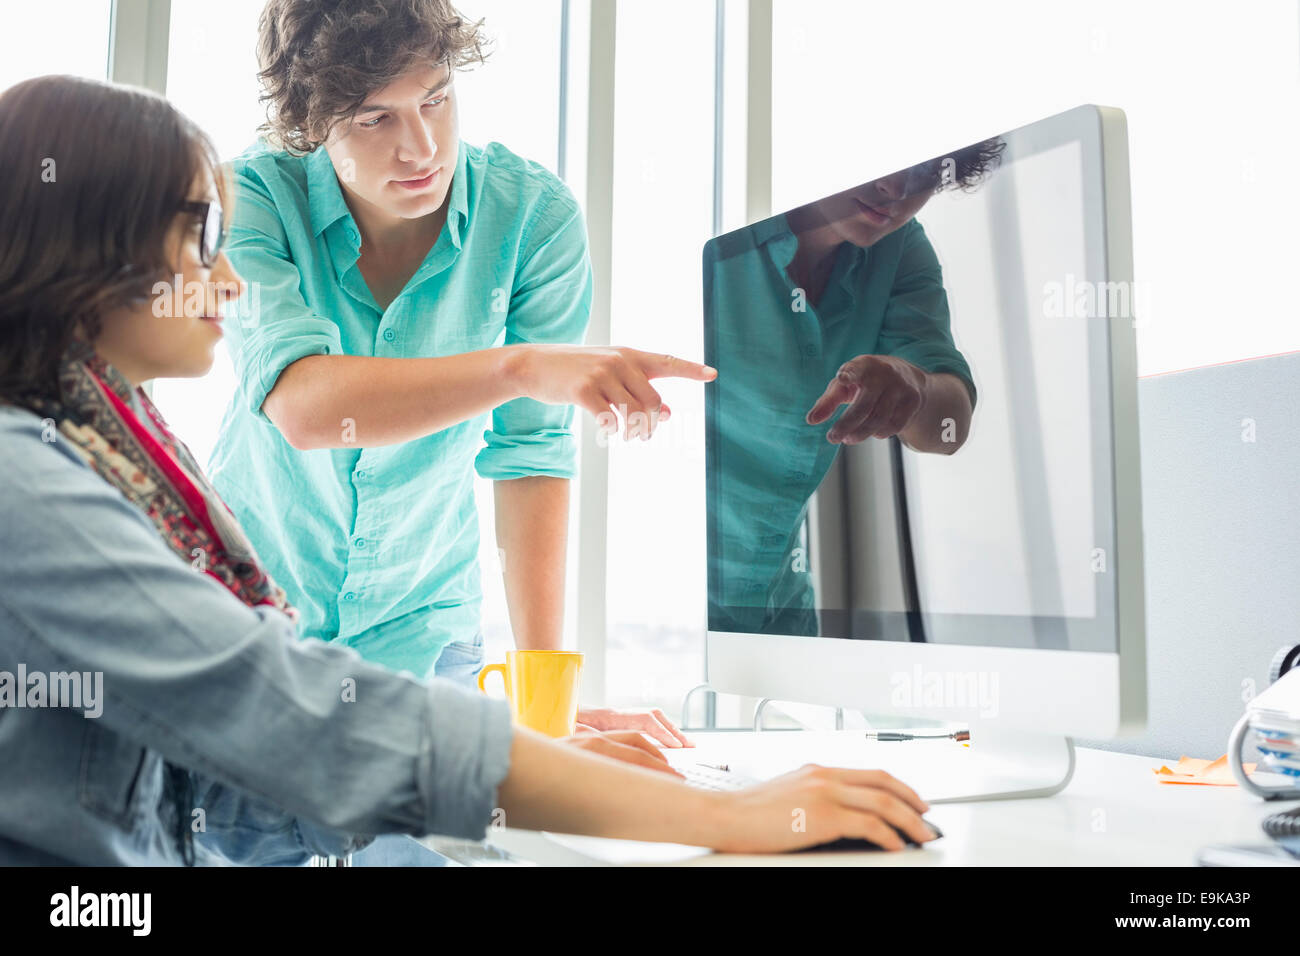 Creative businessman showing something to colleague on desktop computer in office - Stock Image